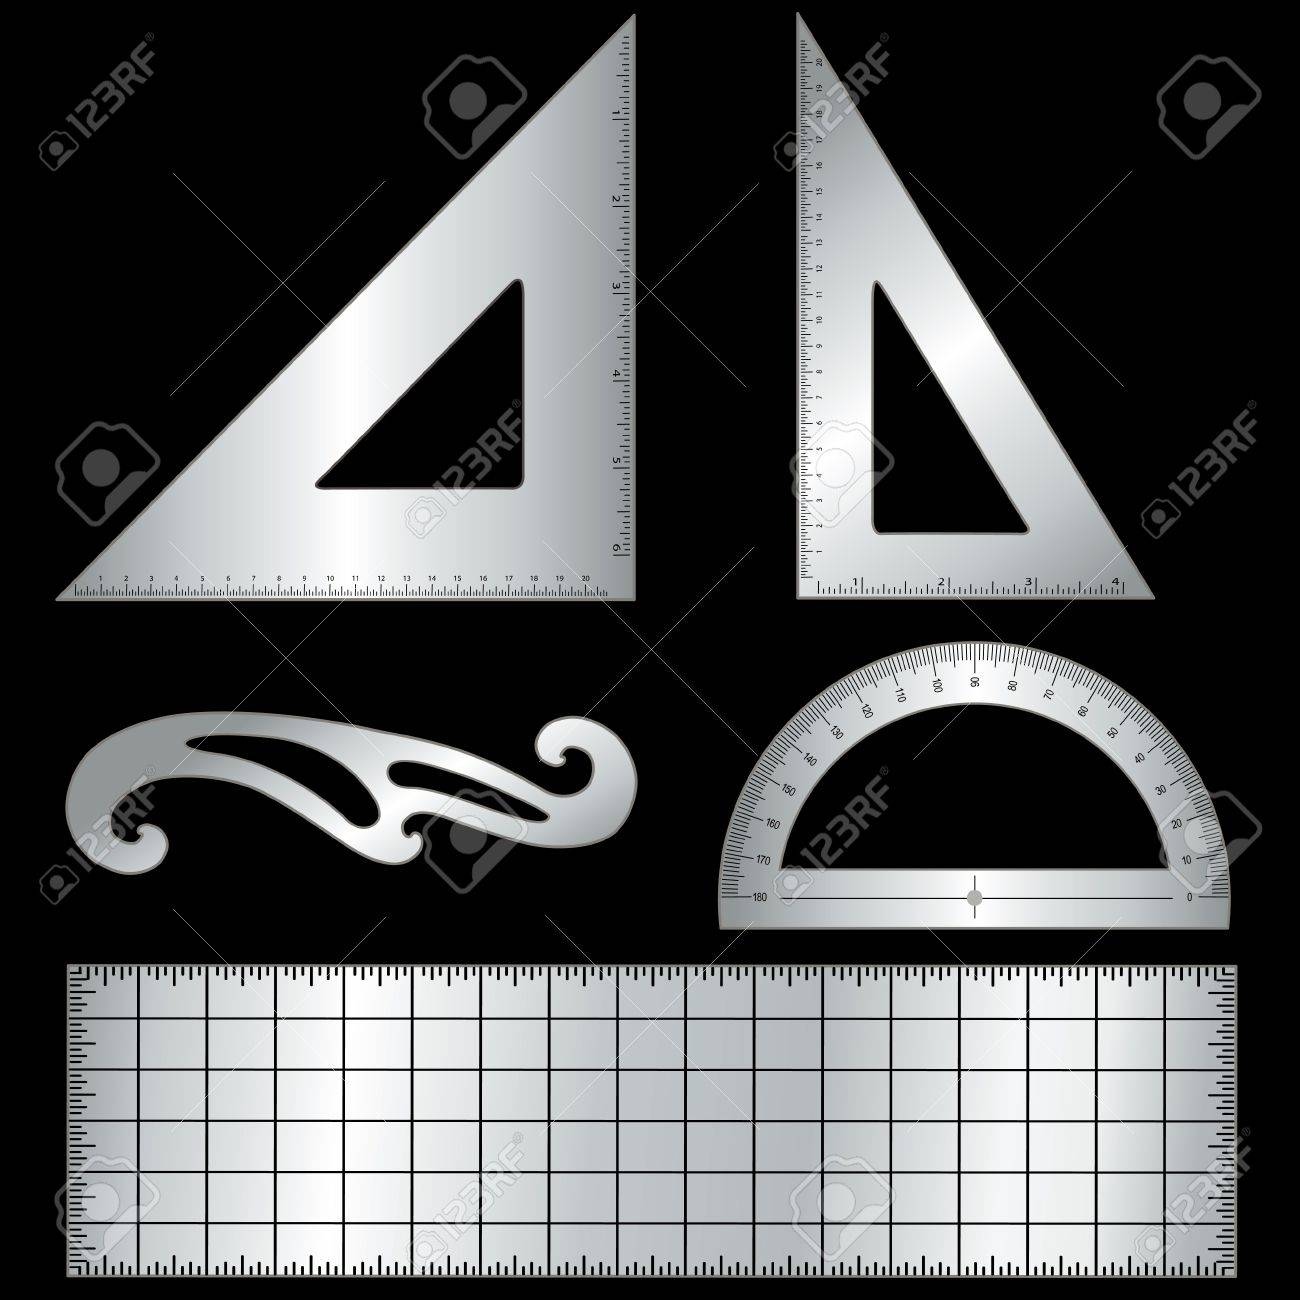 Metal Drafting Tools For Architecture And Engineering Isolated On Black  Background 45 Degree Triangle, 60